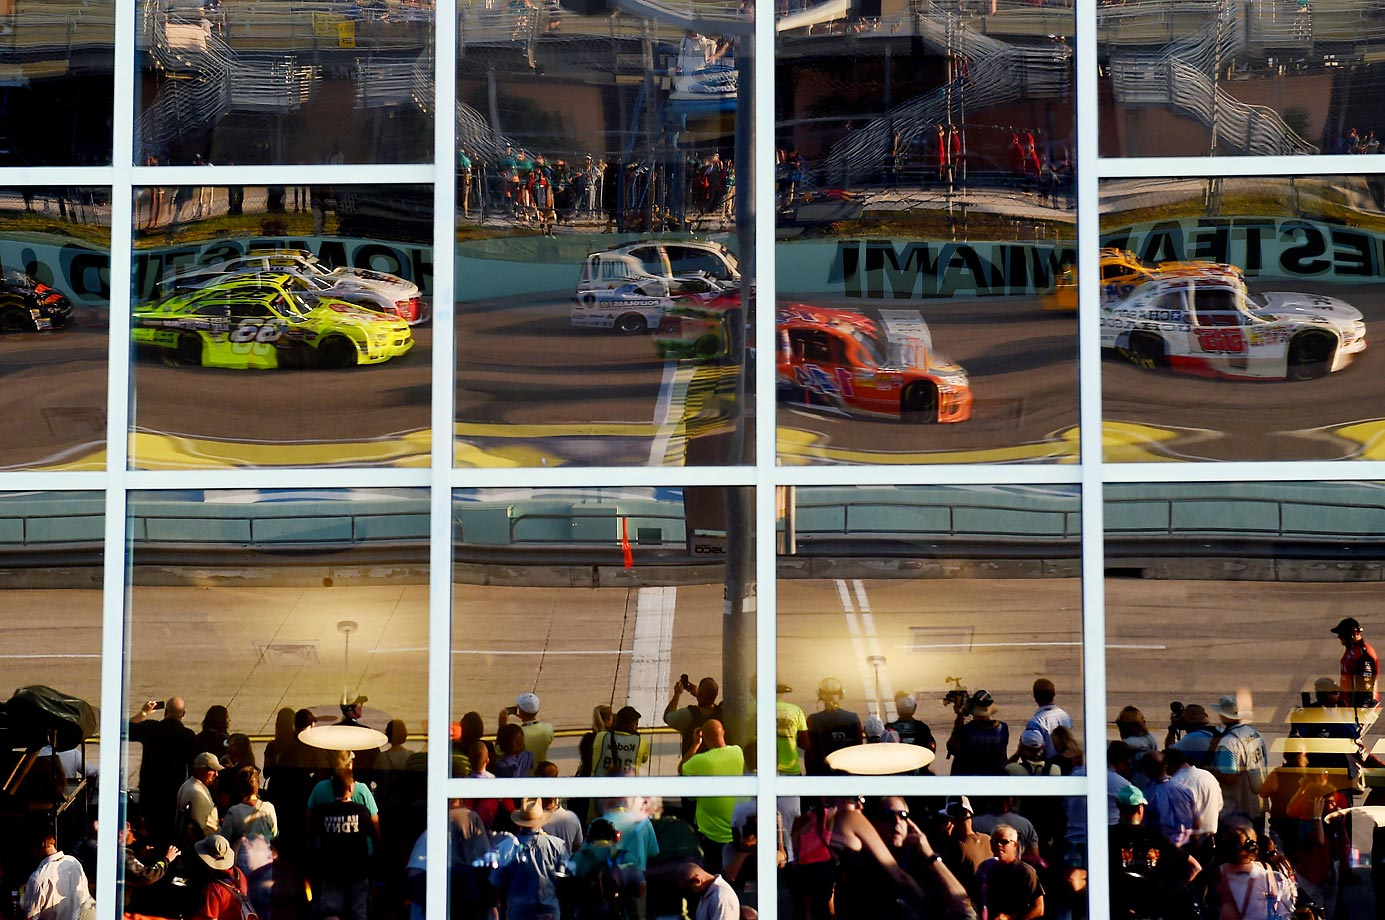 Reflection of cars during the NASCAR Nationwide Series Ford EcoBoost 300 at Homestead-Miami Speedway.